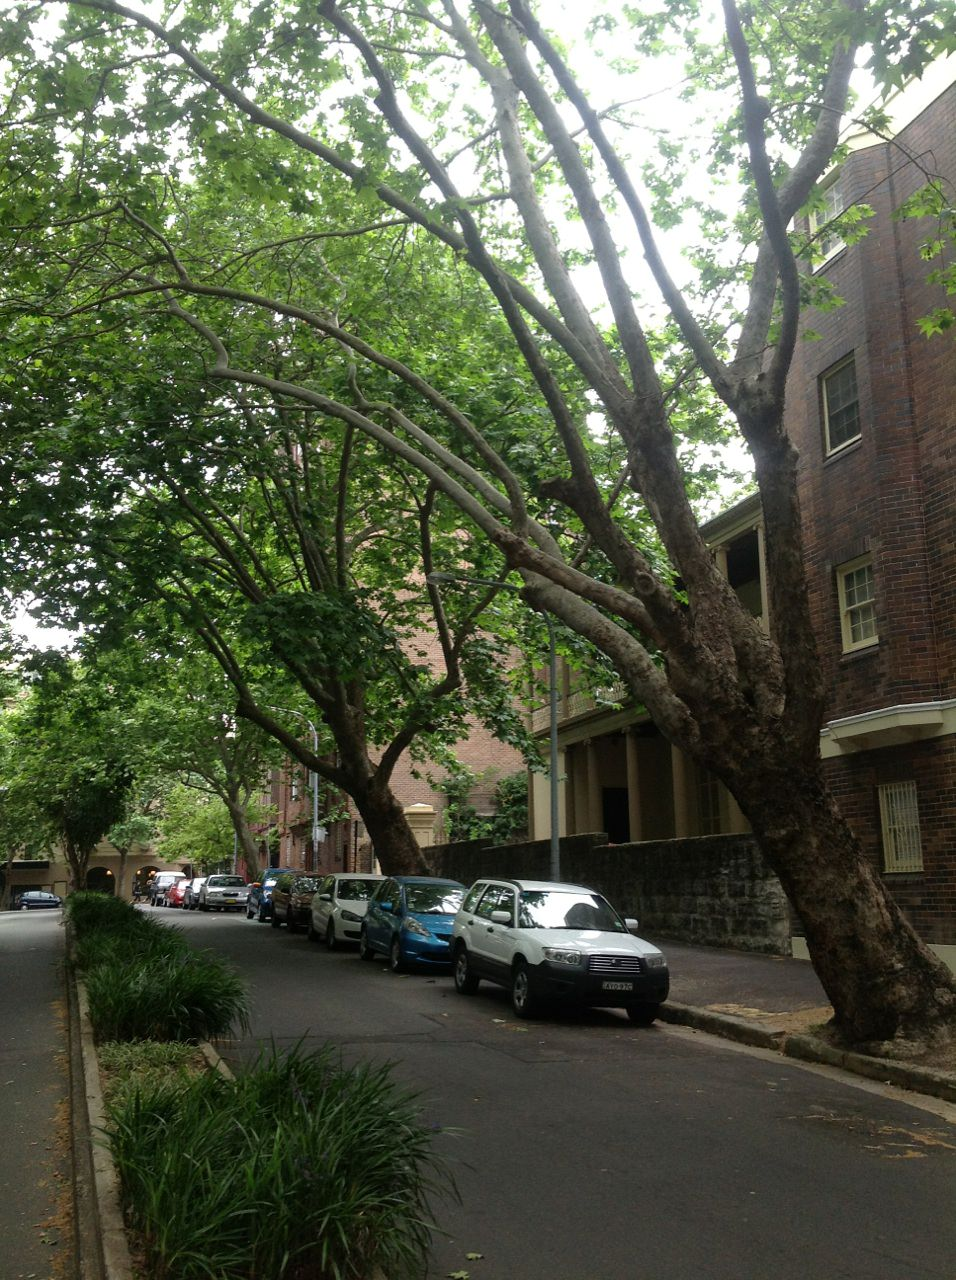 The London Plane Trees of Manning Street